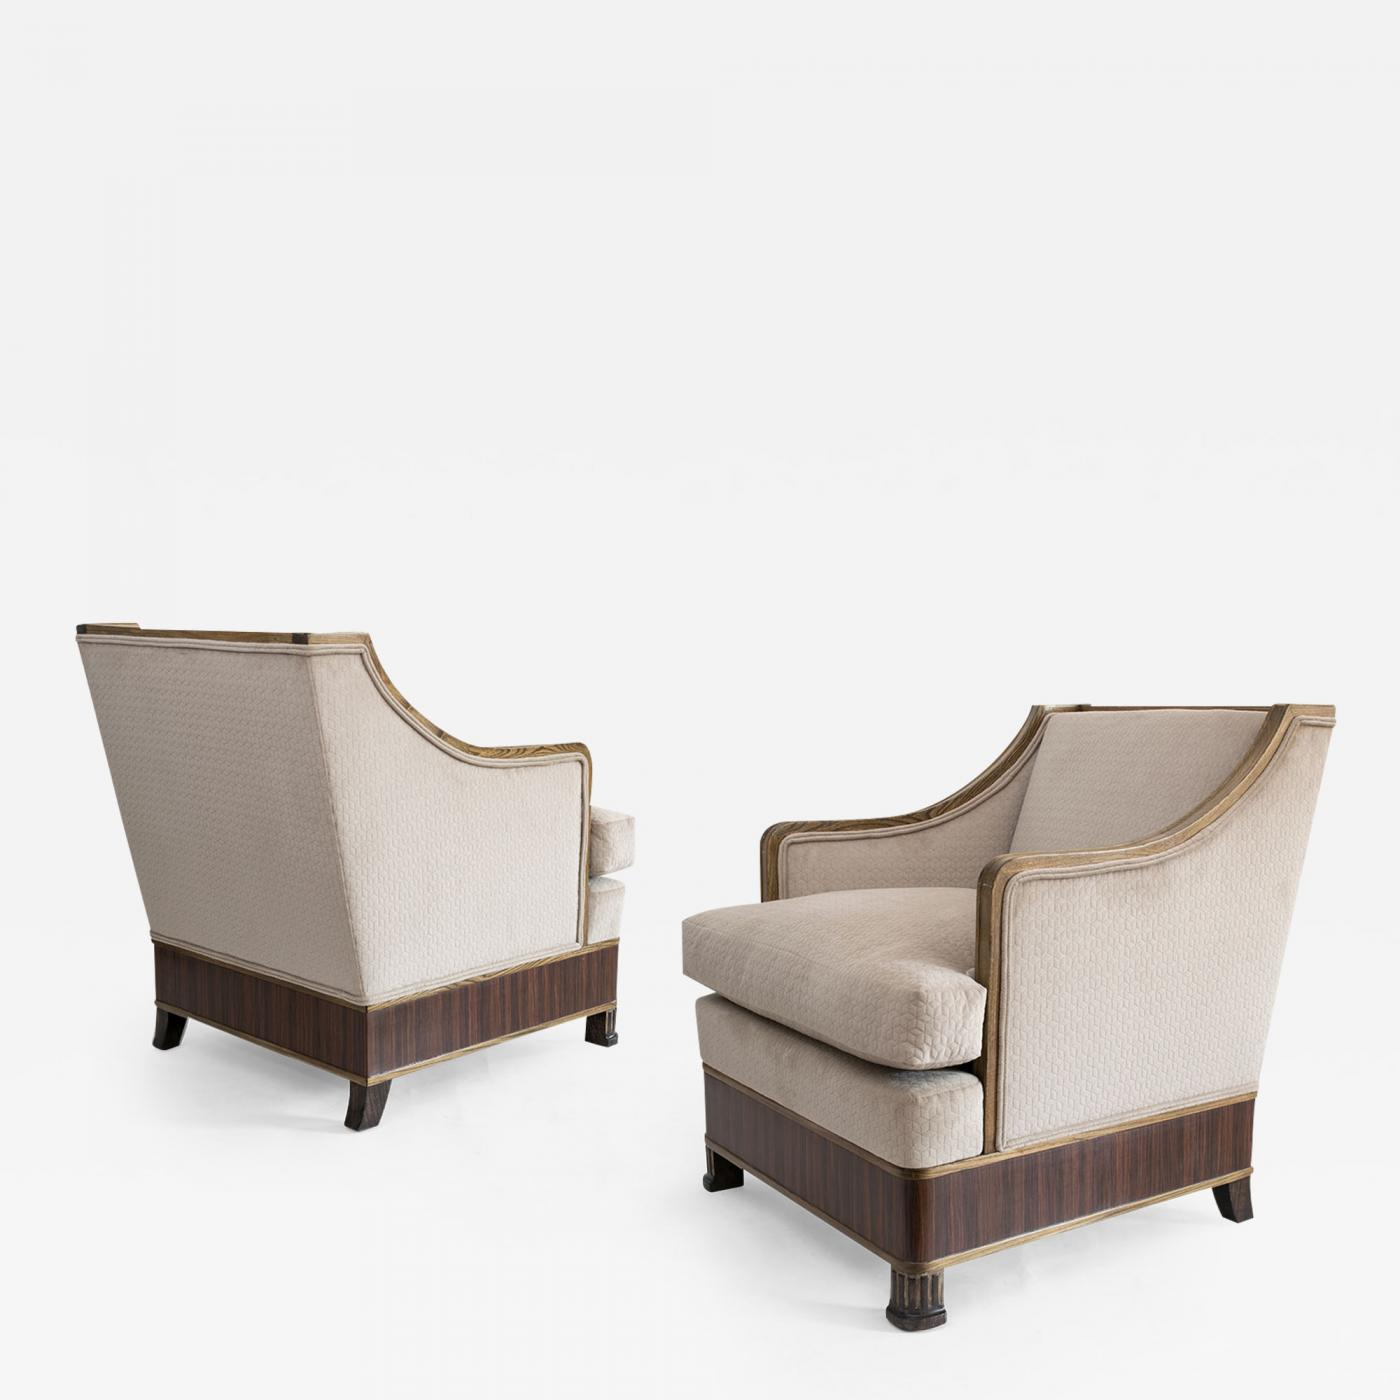 Listings Furniture Seating Armchairs Pair Of Swedish Art Deco